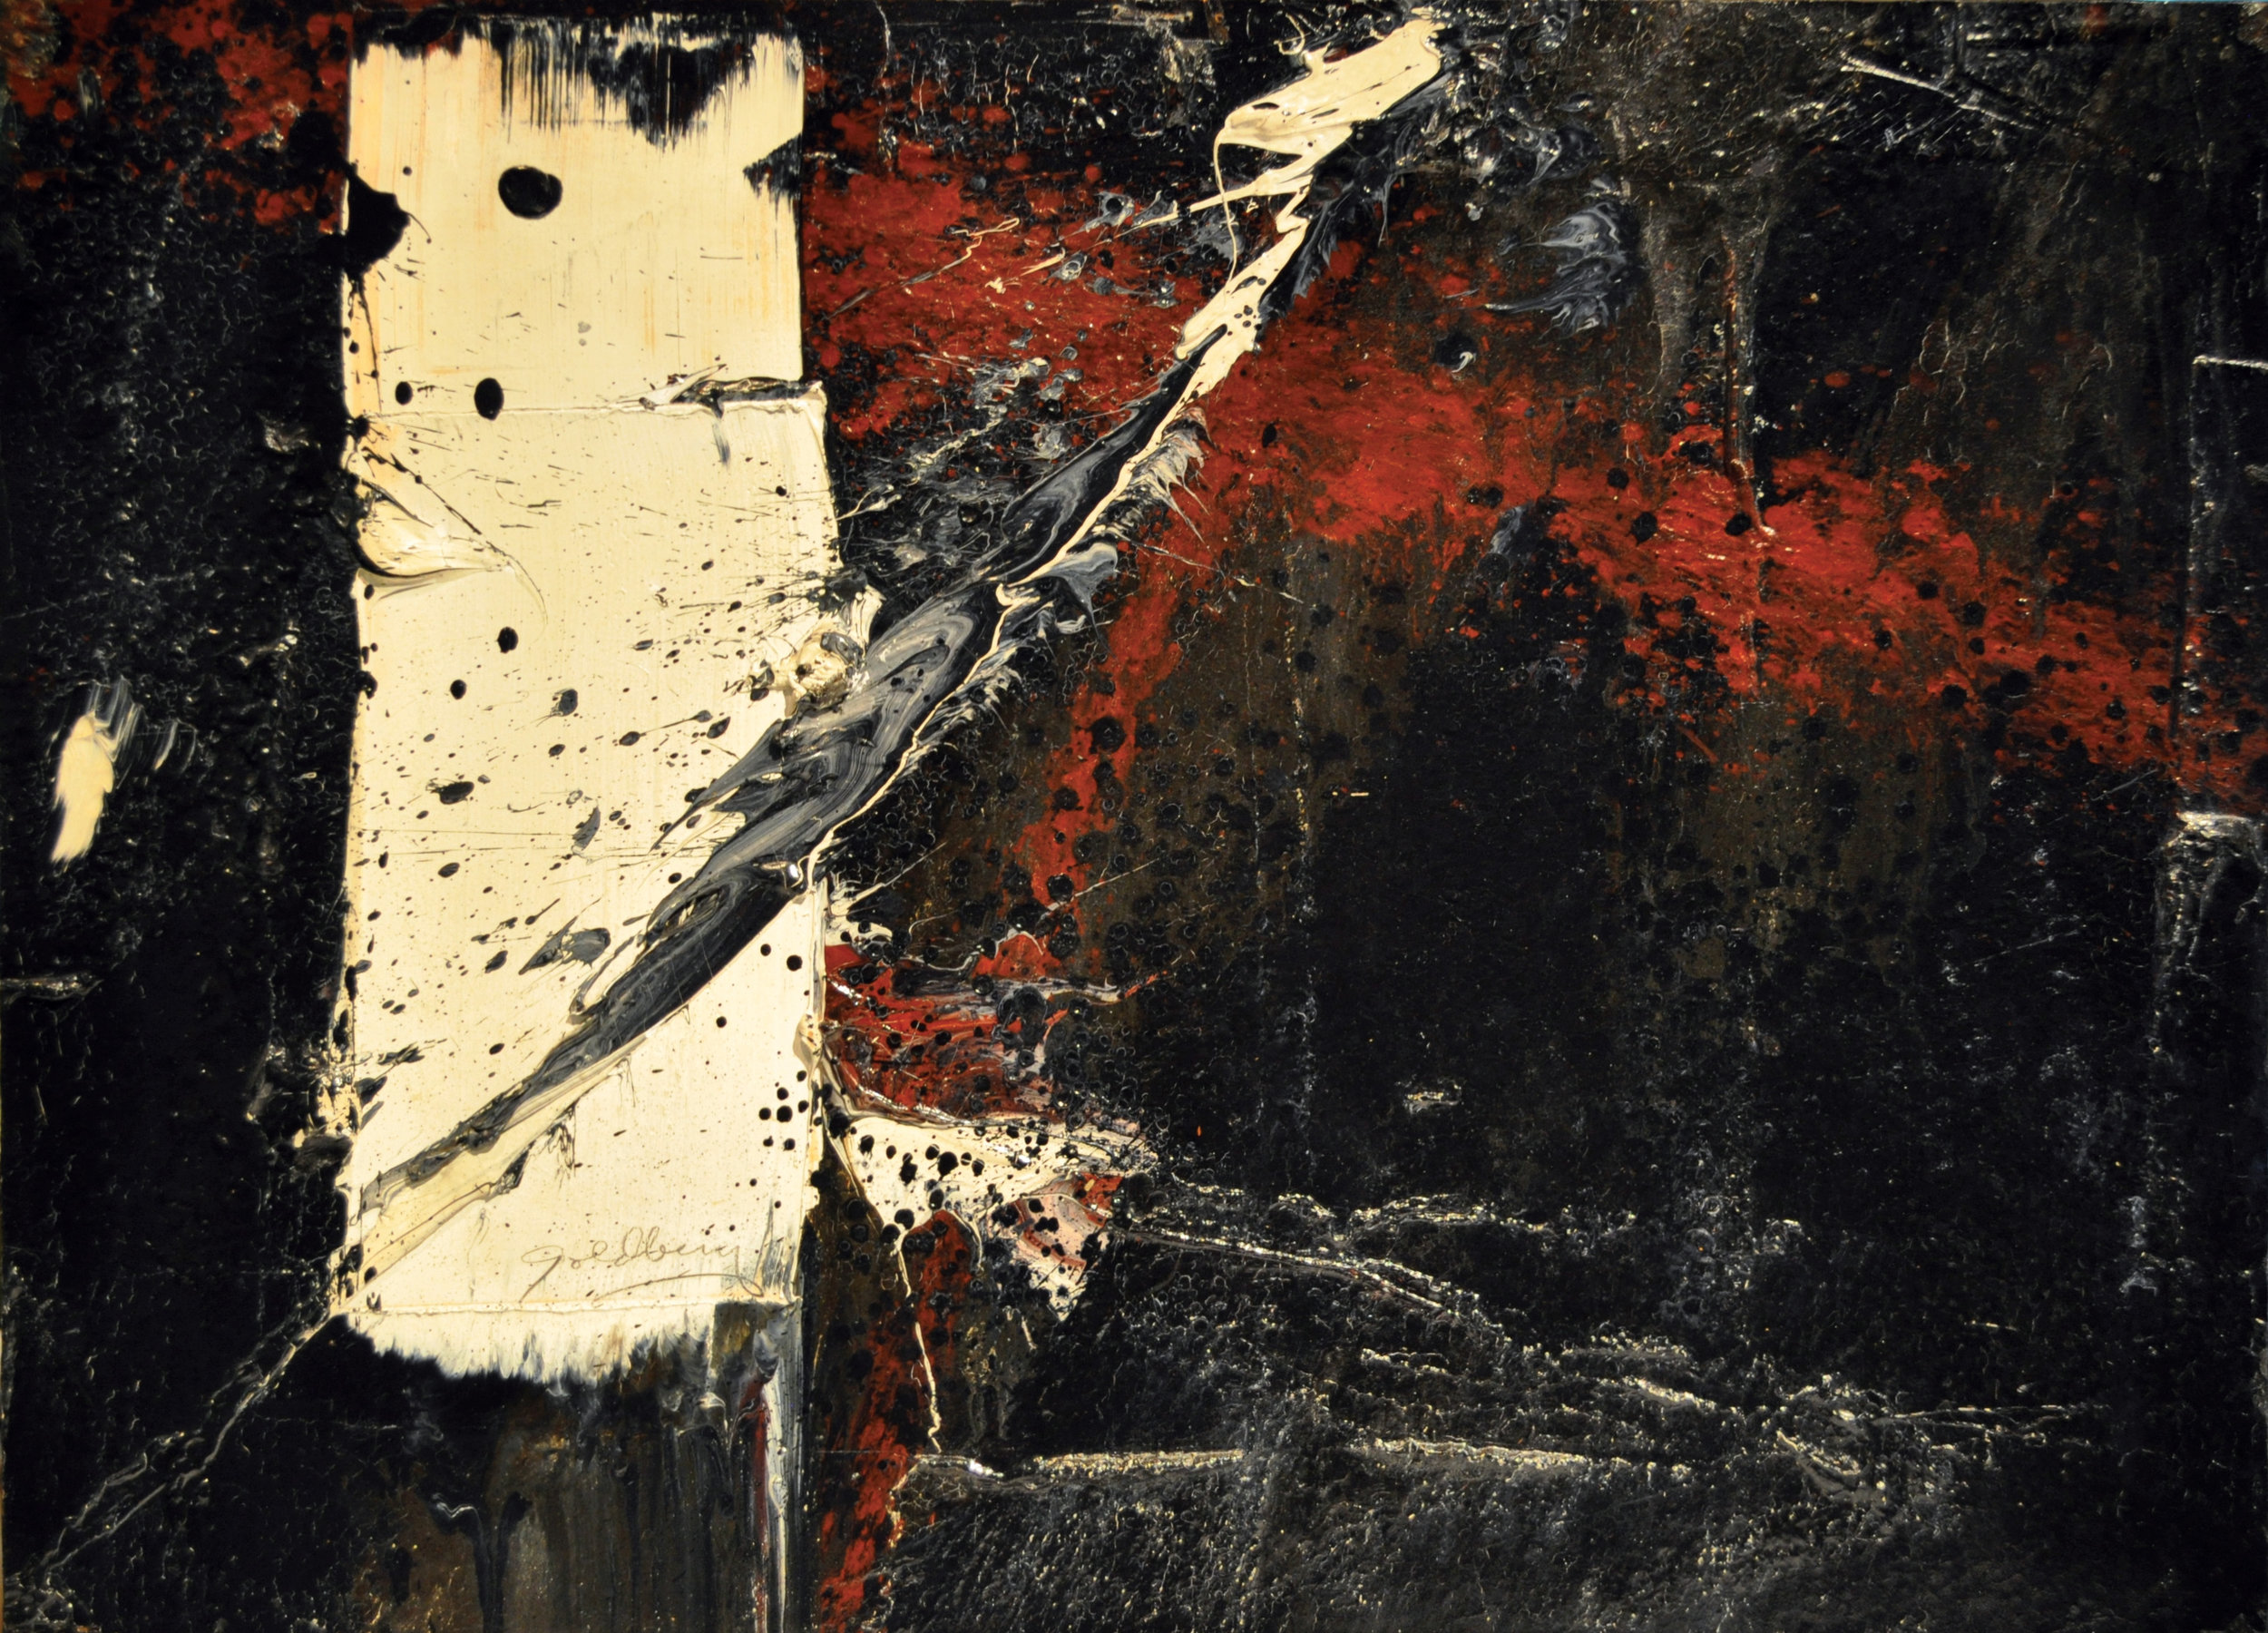 SOLD  Untitled, c. 1960  , oil and enamel on paper laid down on wooden panel, 11 x 15 inches